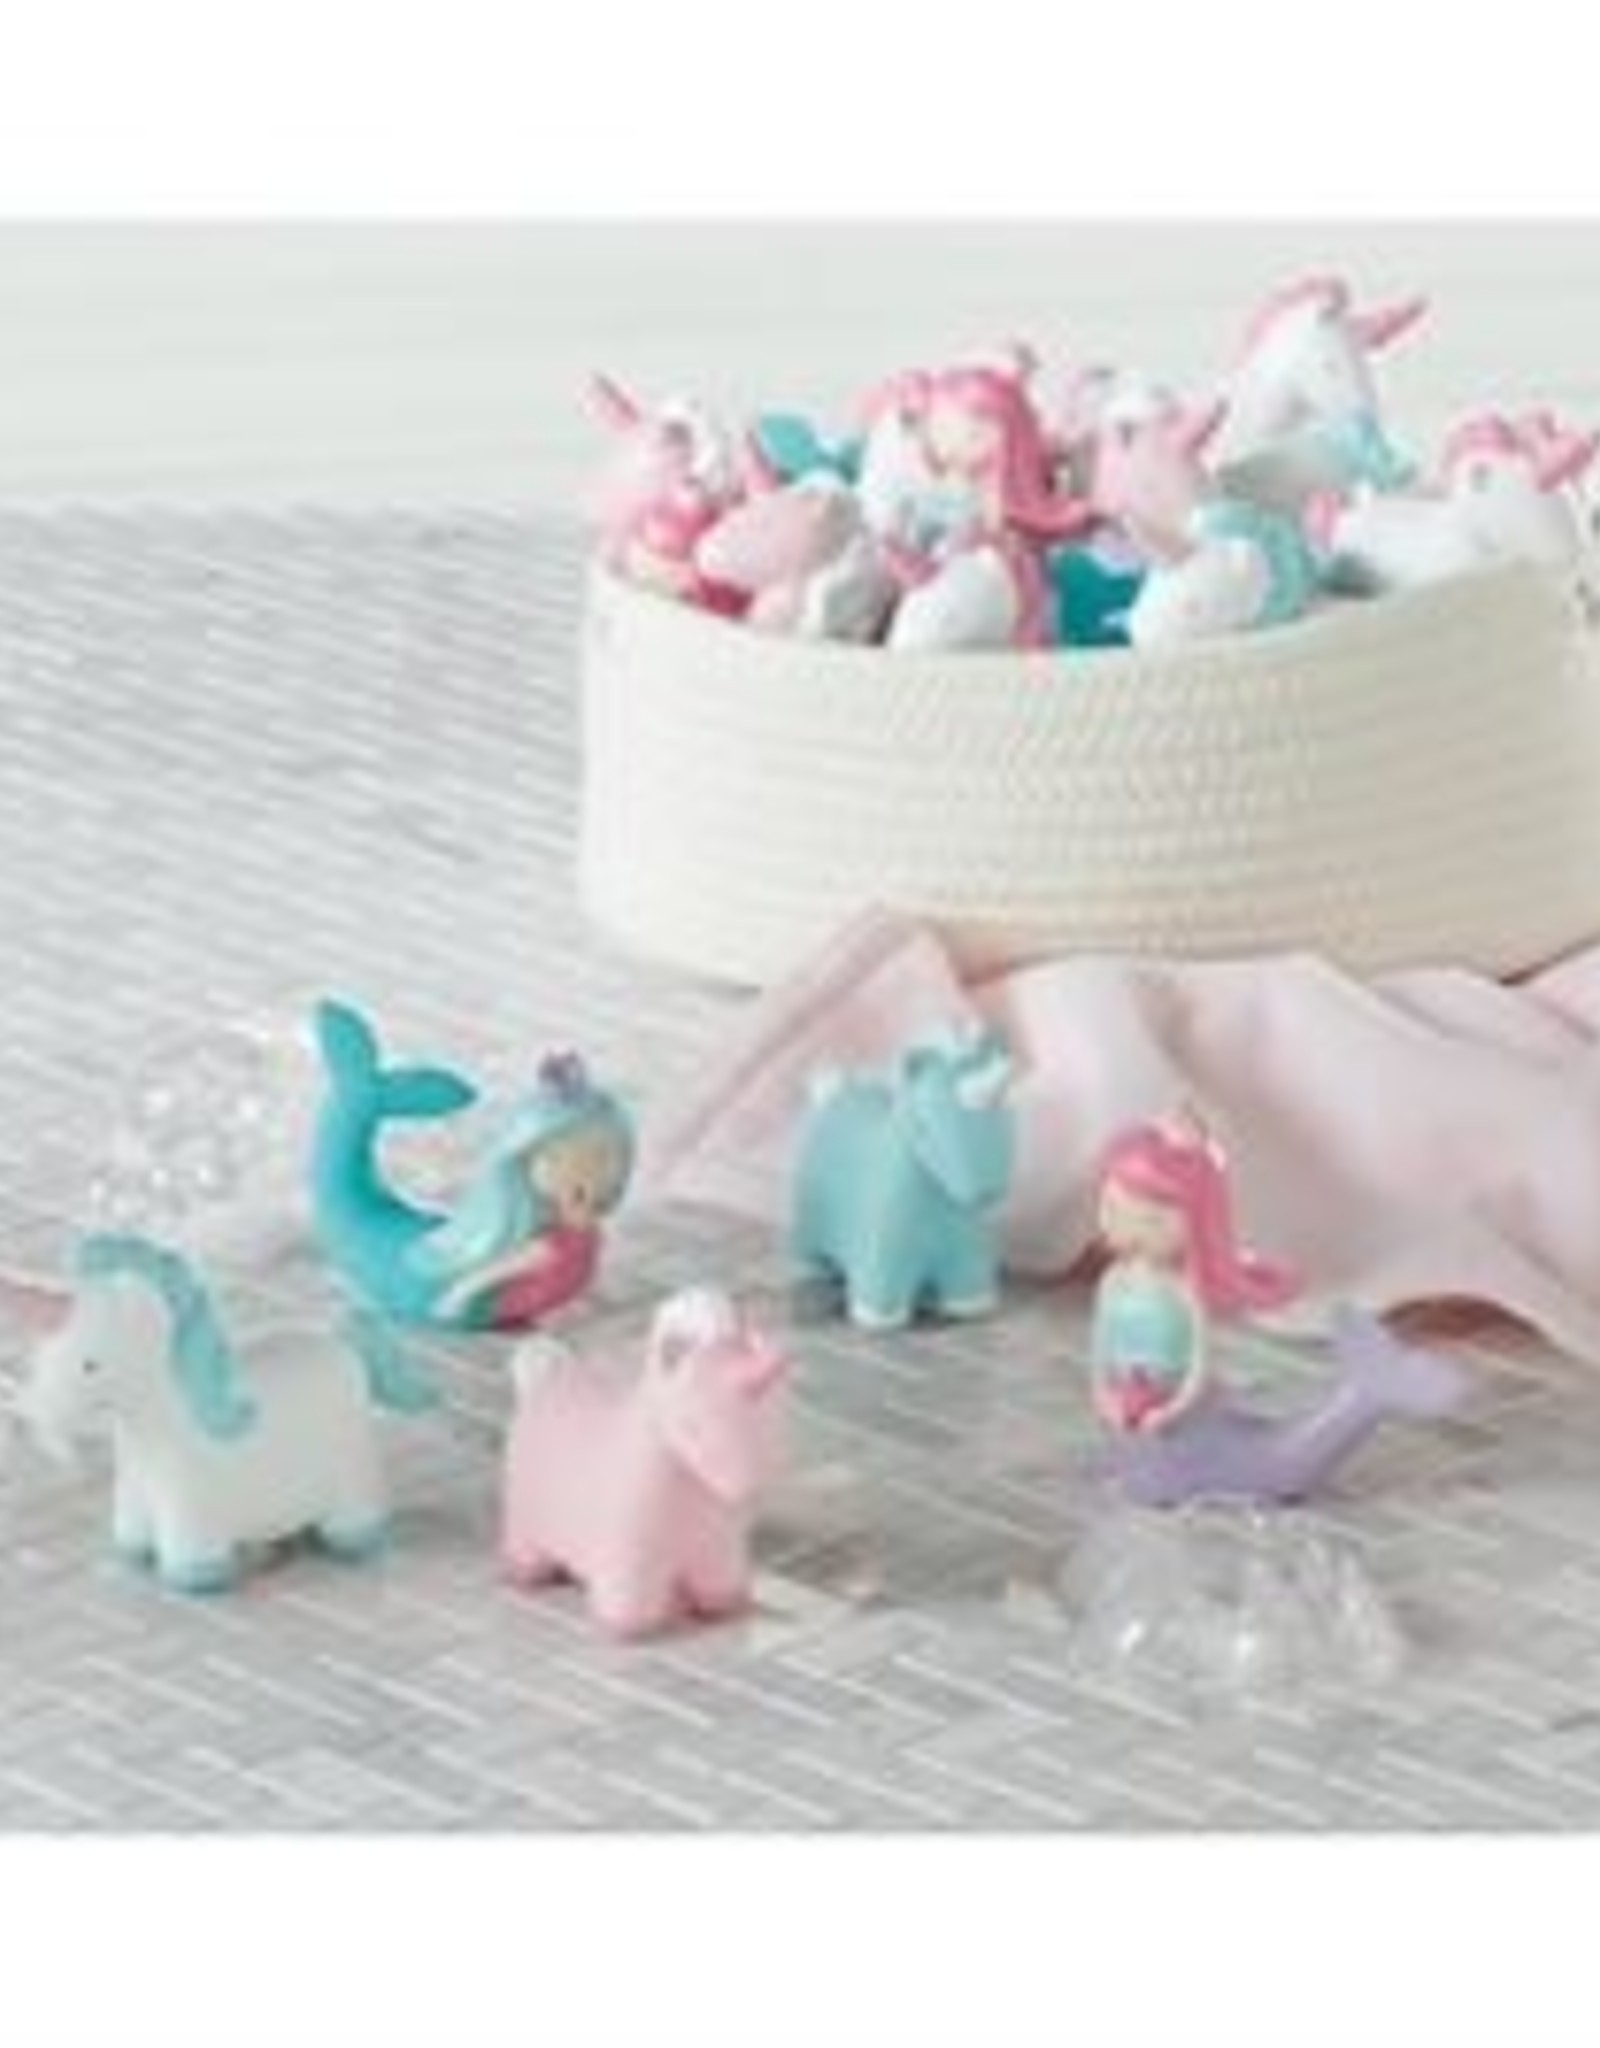 Mud Pie Mermaid & Unicorn Bath Toy